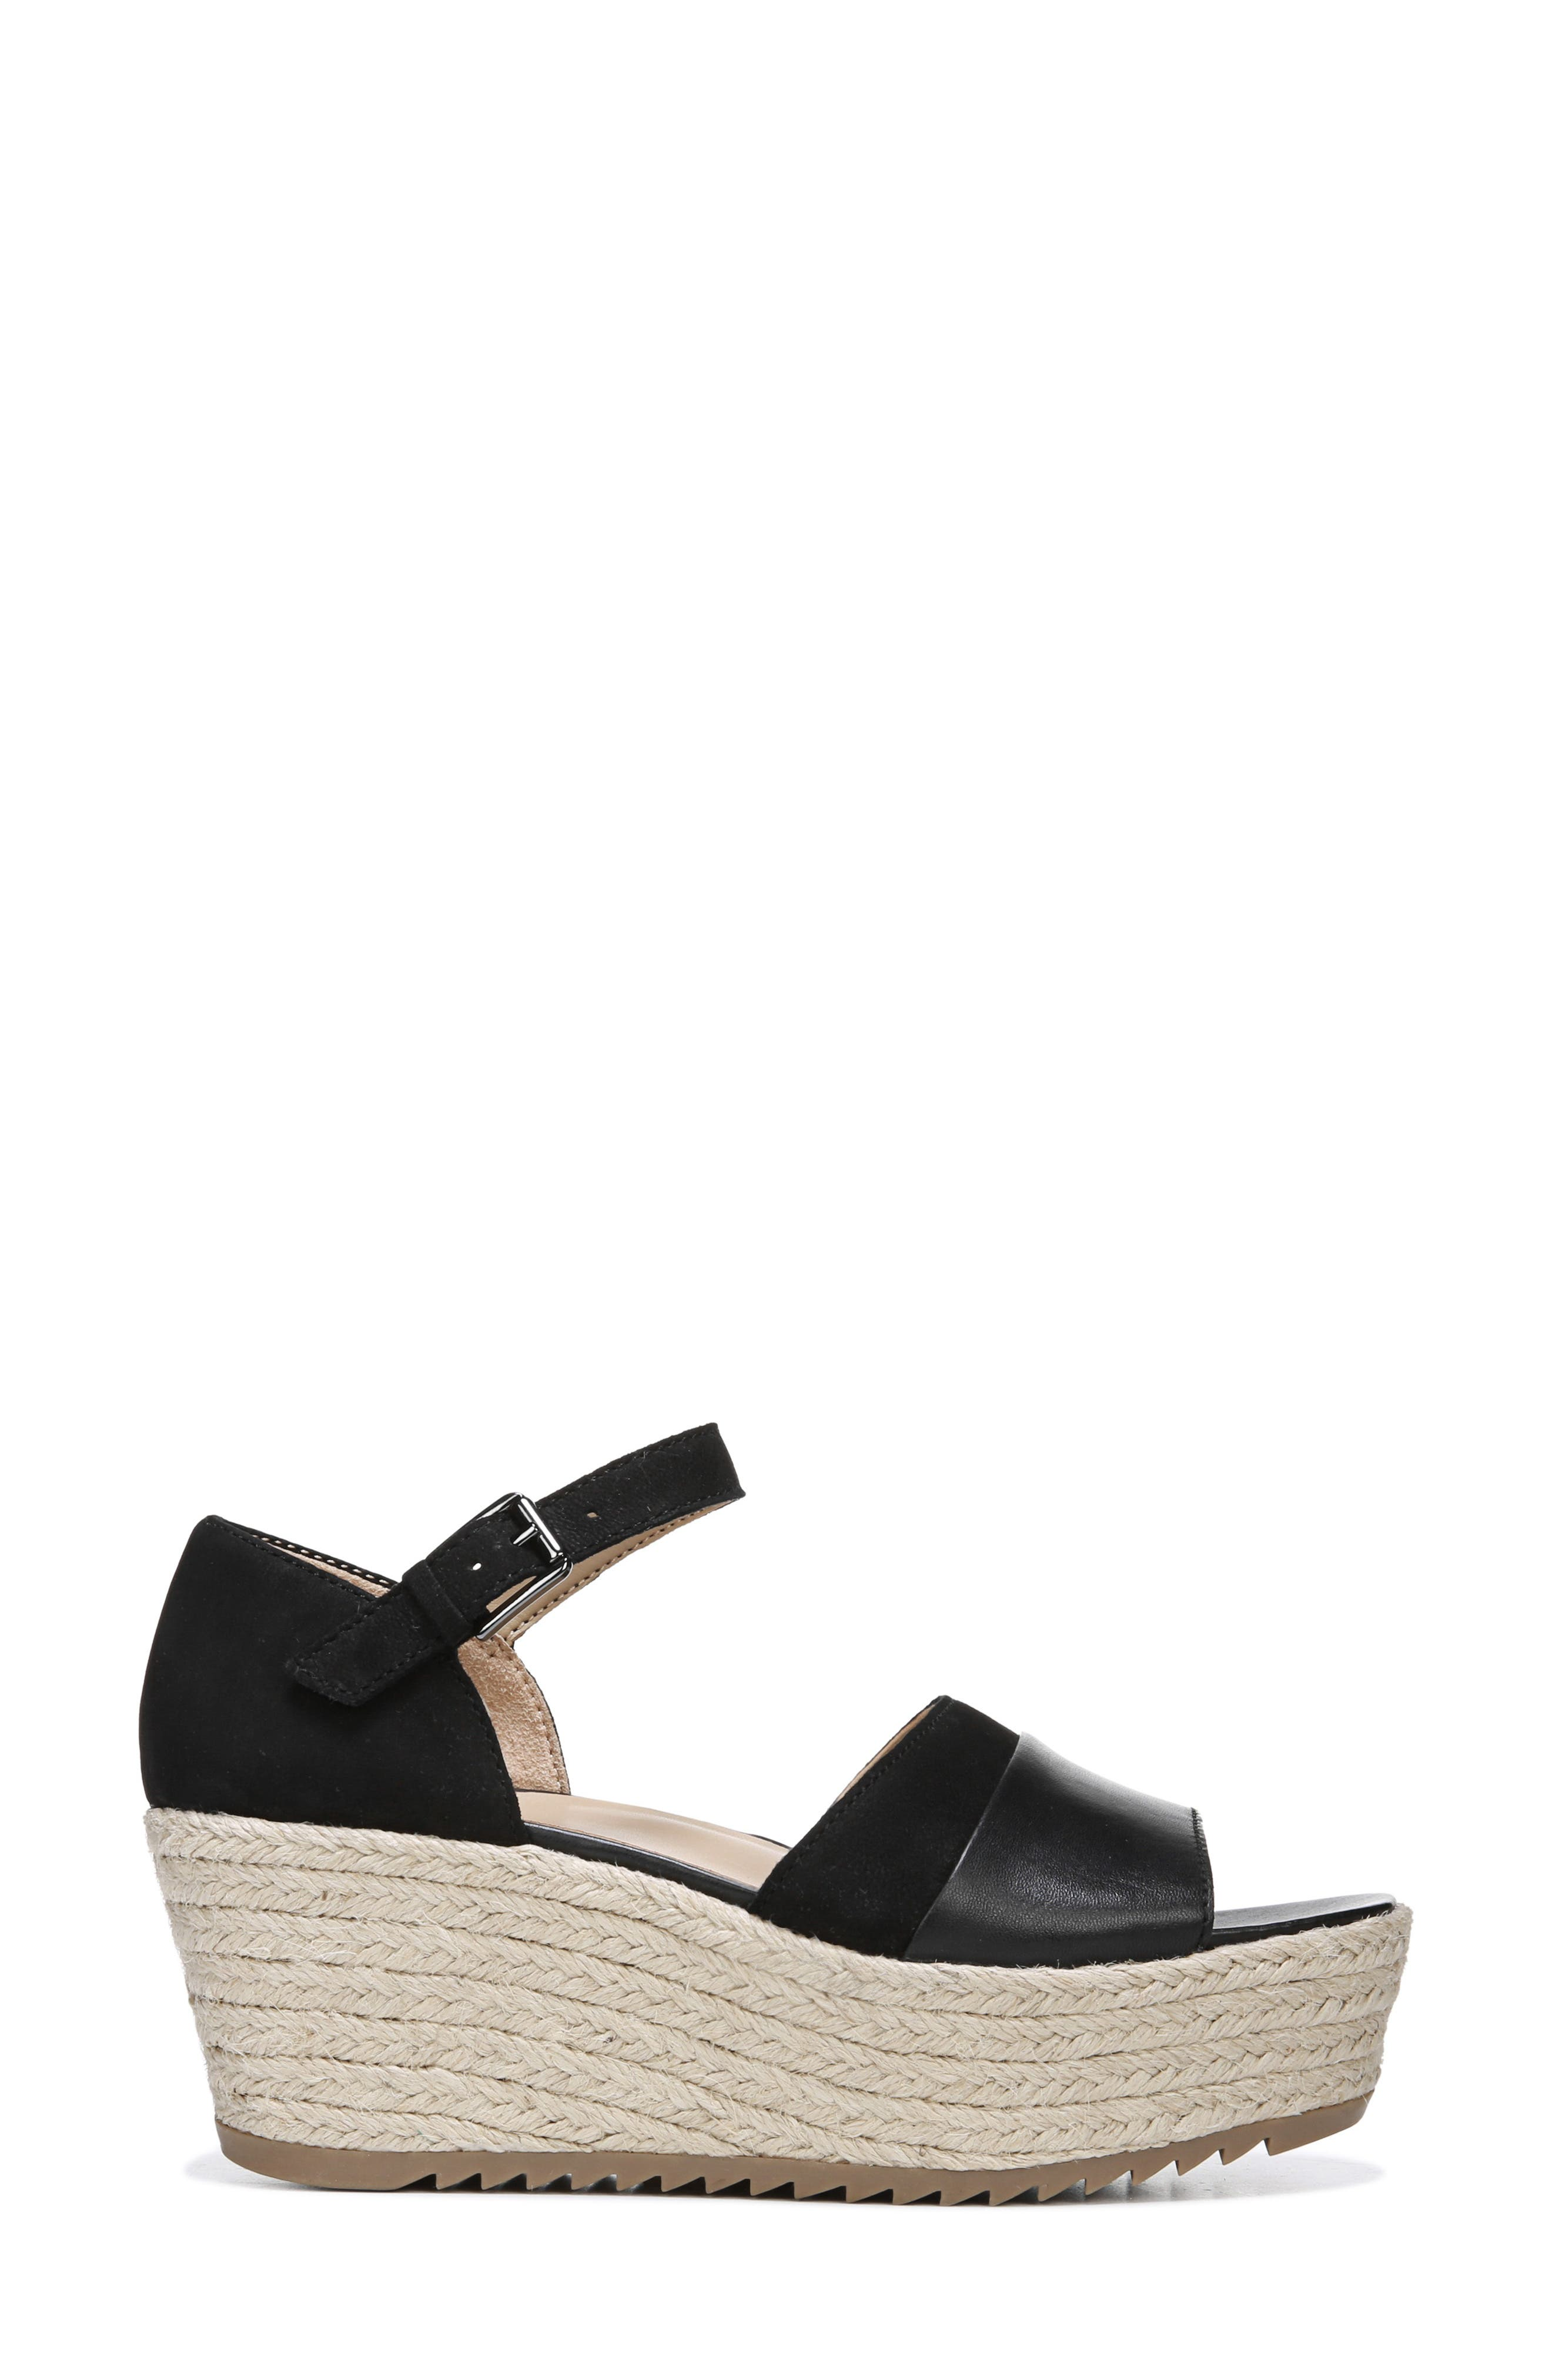 NATURALIZER, Opal Espadrille Platform Wedge Sandal, Alternate thumbnail 3, color, BLACK LEATHER